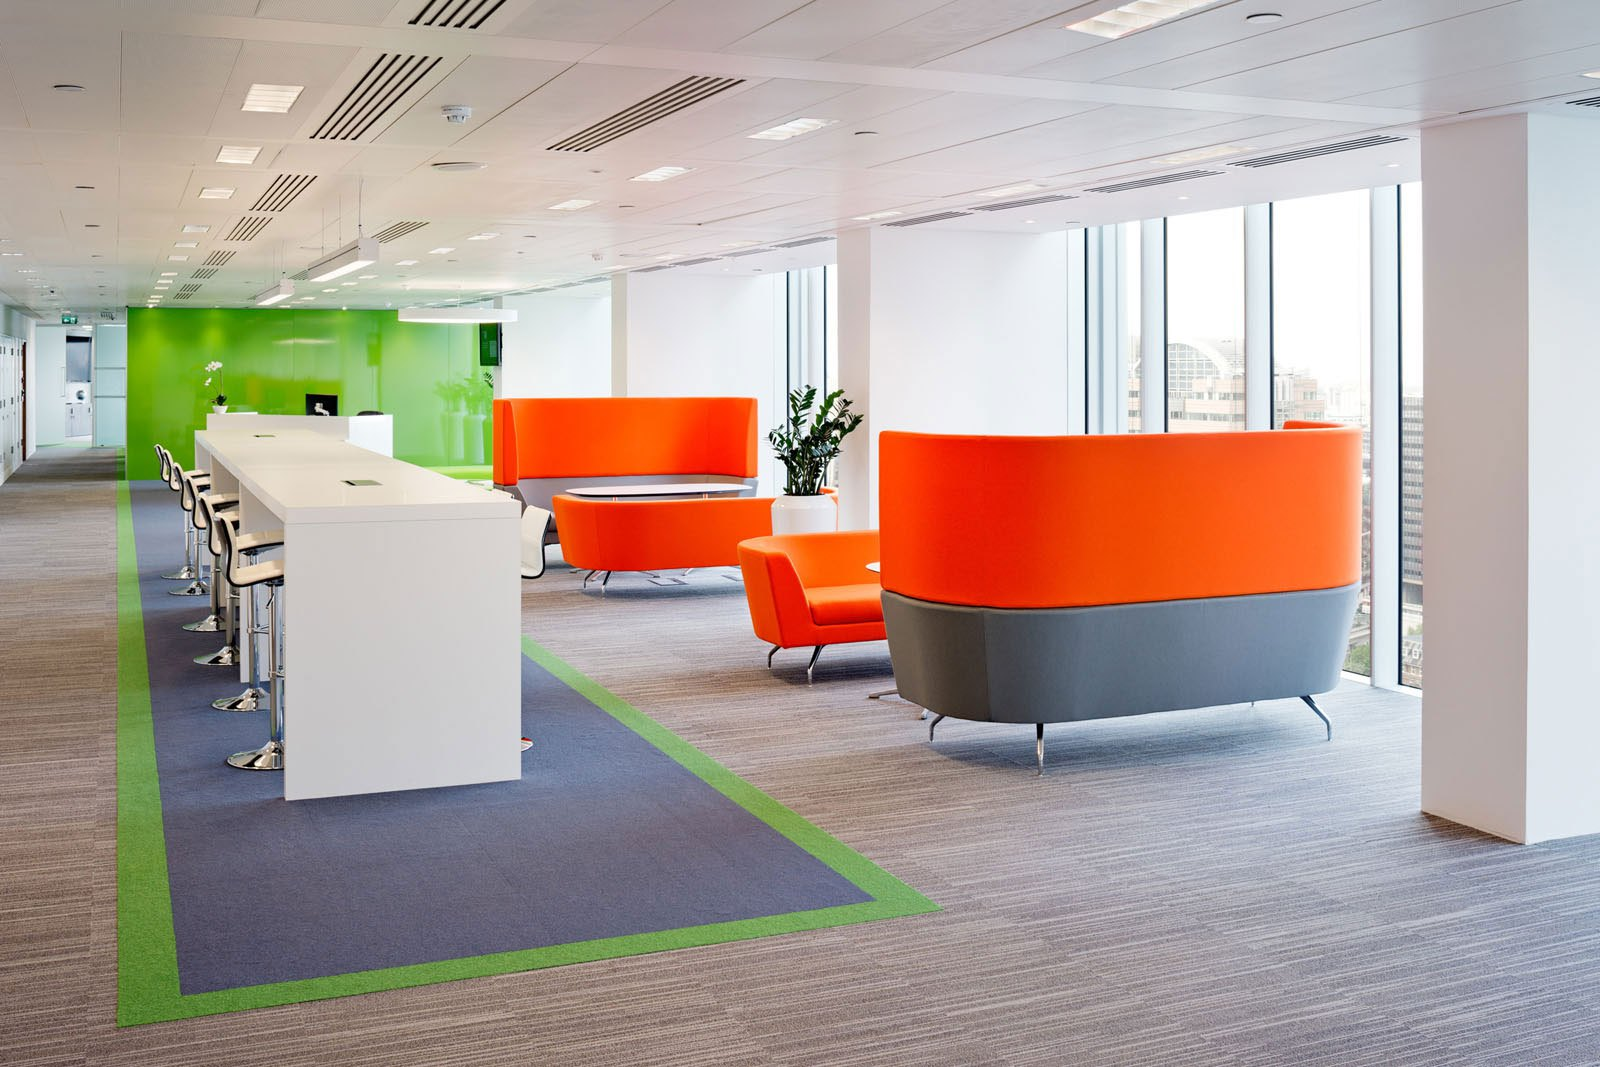 Demandware-london-office-6